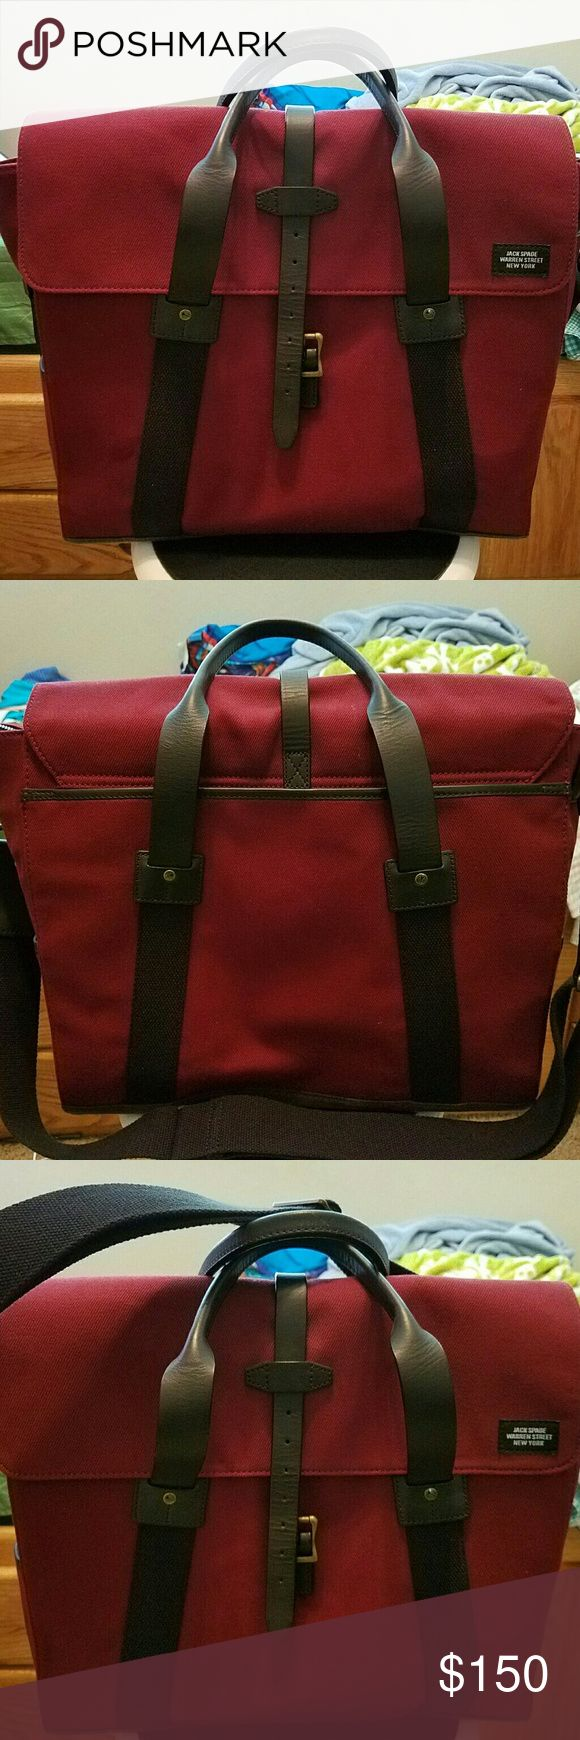 Jack spade  bag has  ask for info thanks Wine swiss brief jack spade bag Jack Spade Bags Luggage & Travel Bags